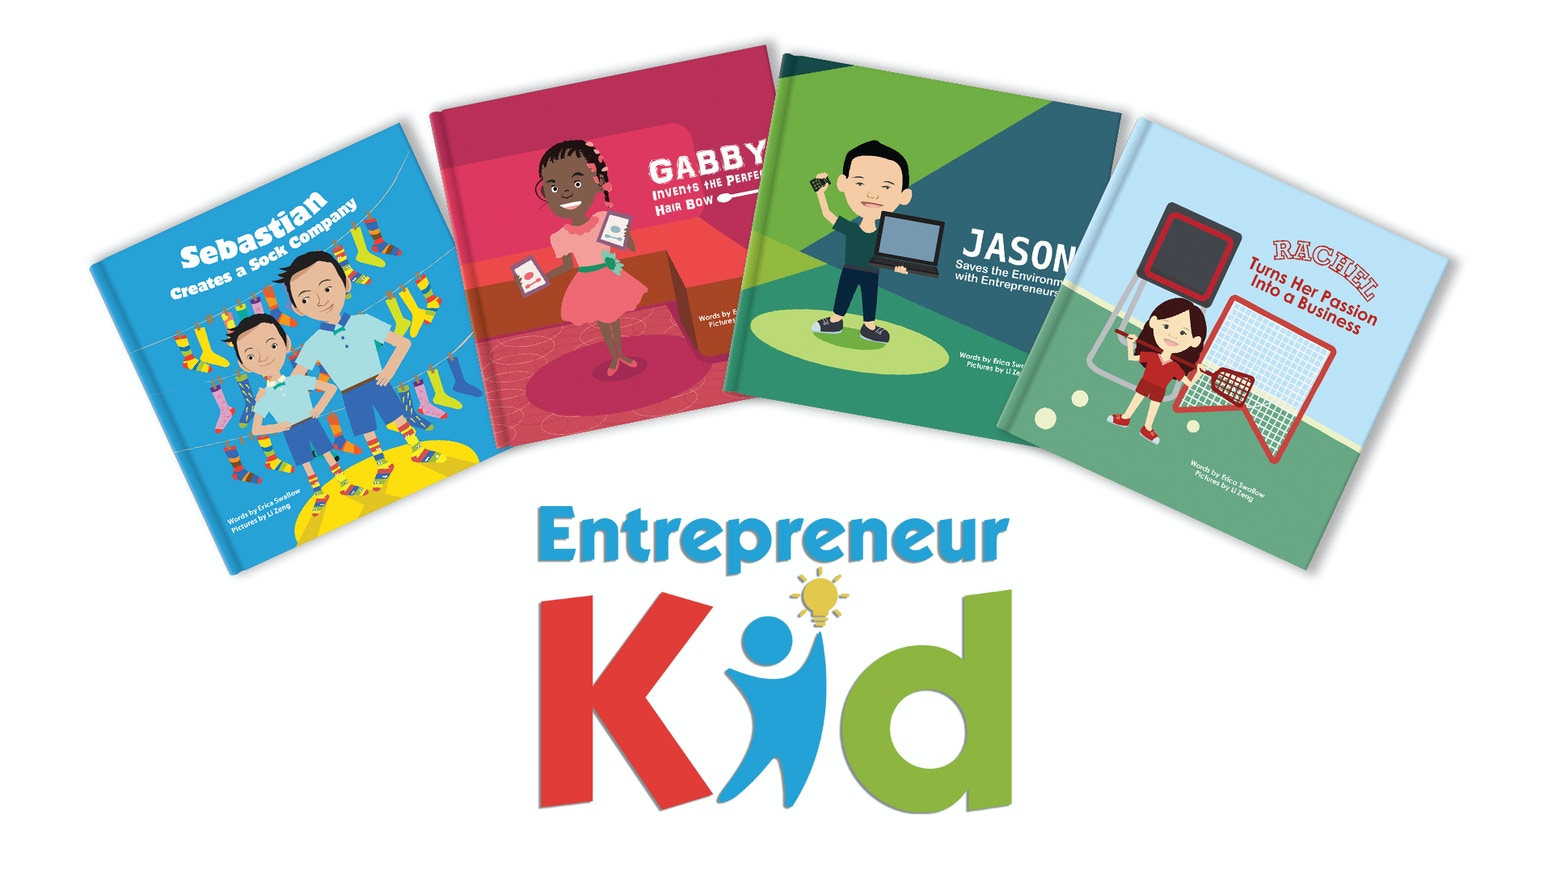 Little Launchers (formerly known as Entrepreneur Kid) is a children's picture book series about real kids with real businesses.